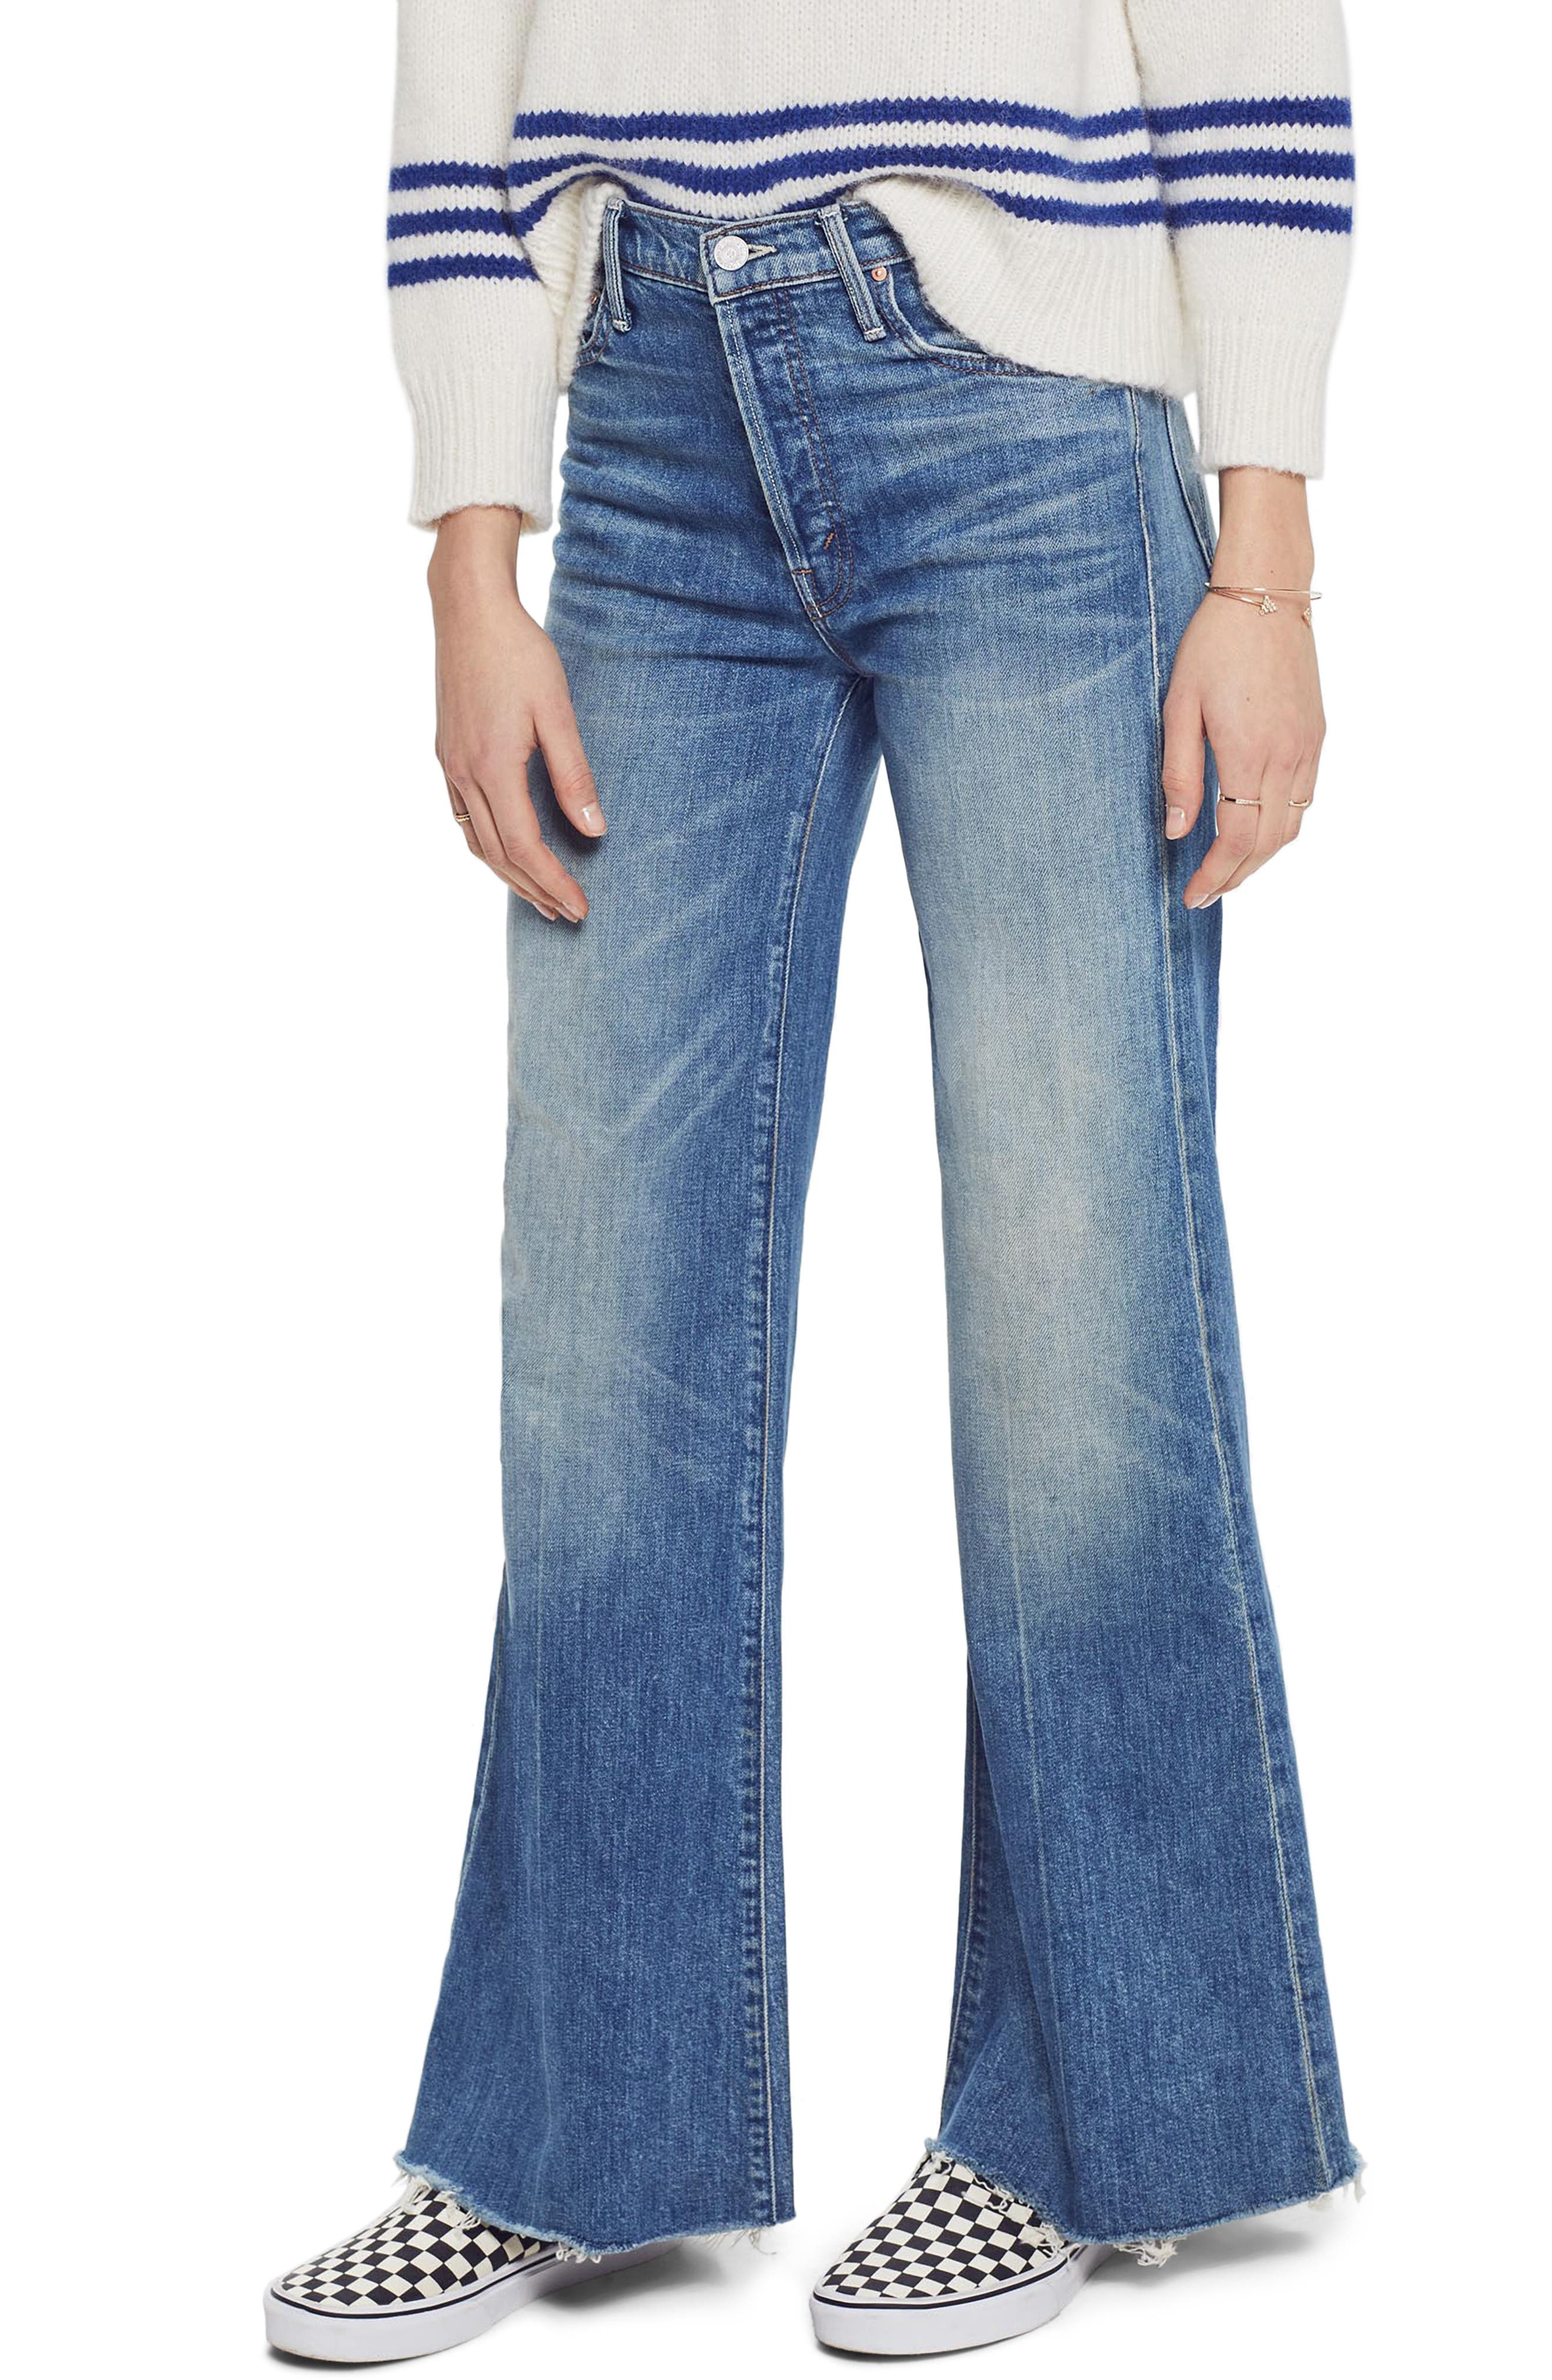 MOTHER, The Tomcat Roller Fray Jeans, Main thumbnail 1, color, SACRED